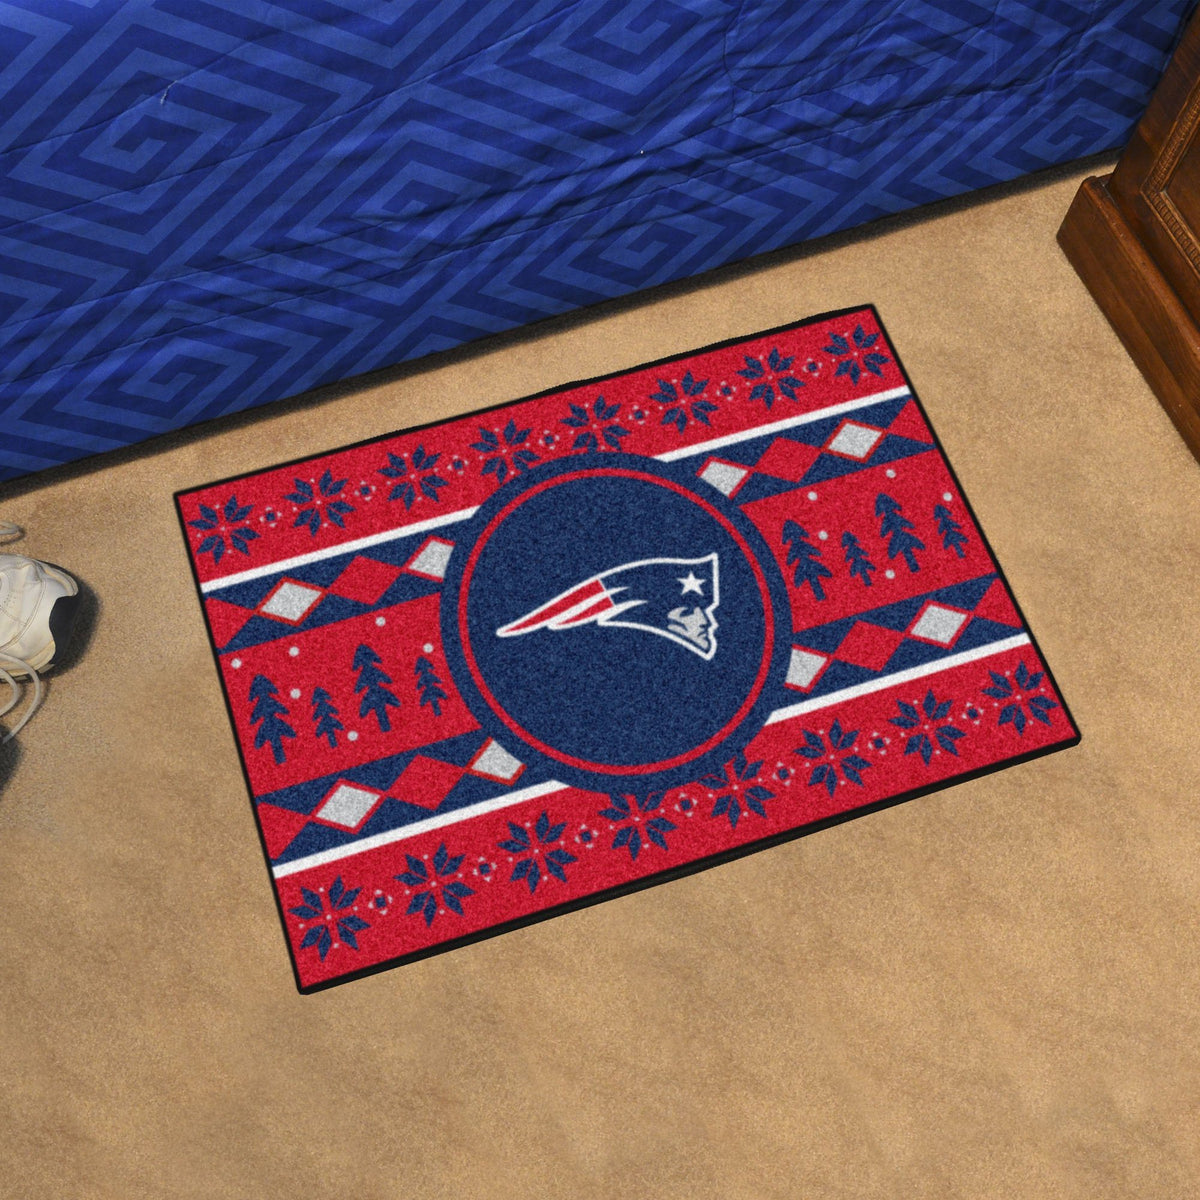 "NFL - Holiday Sweater Starter Mat, 19"" x 30"" NFL Mats, Rectangular Mats, Holiday Sweater Starter Mat, NFL, Home Fan Mats New England Patriots"